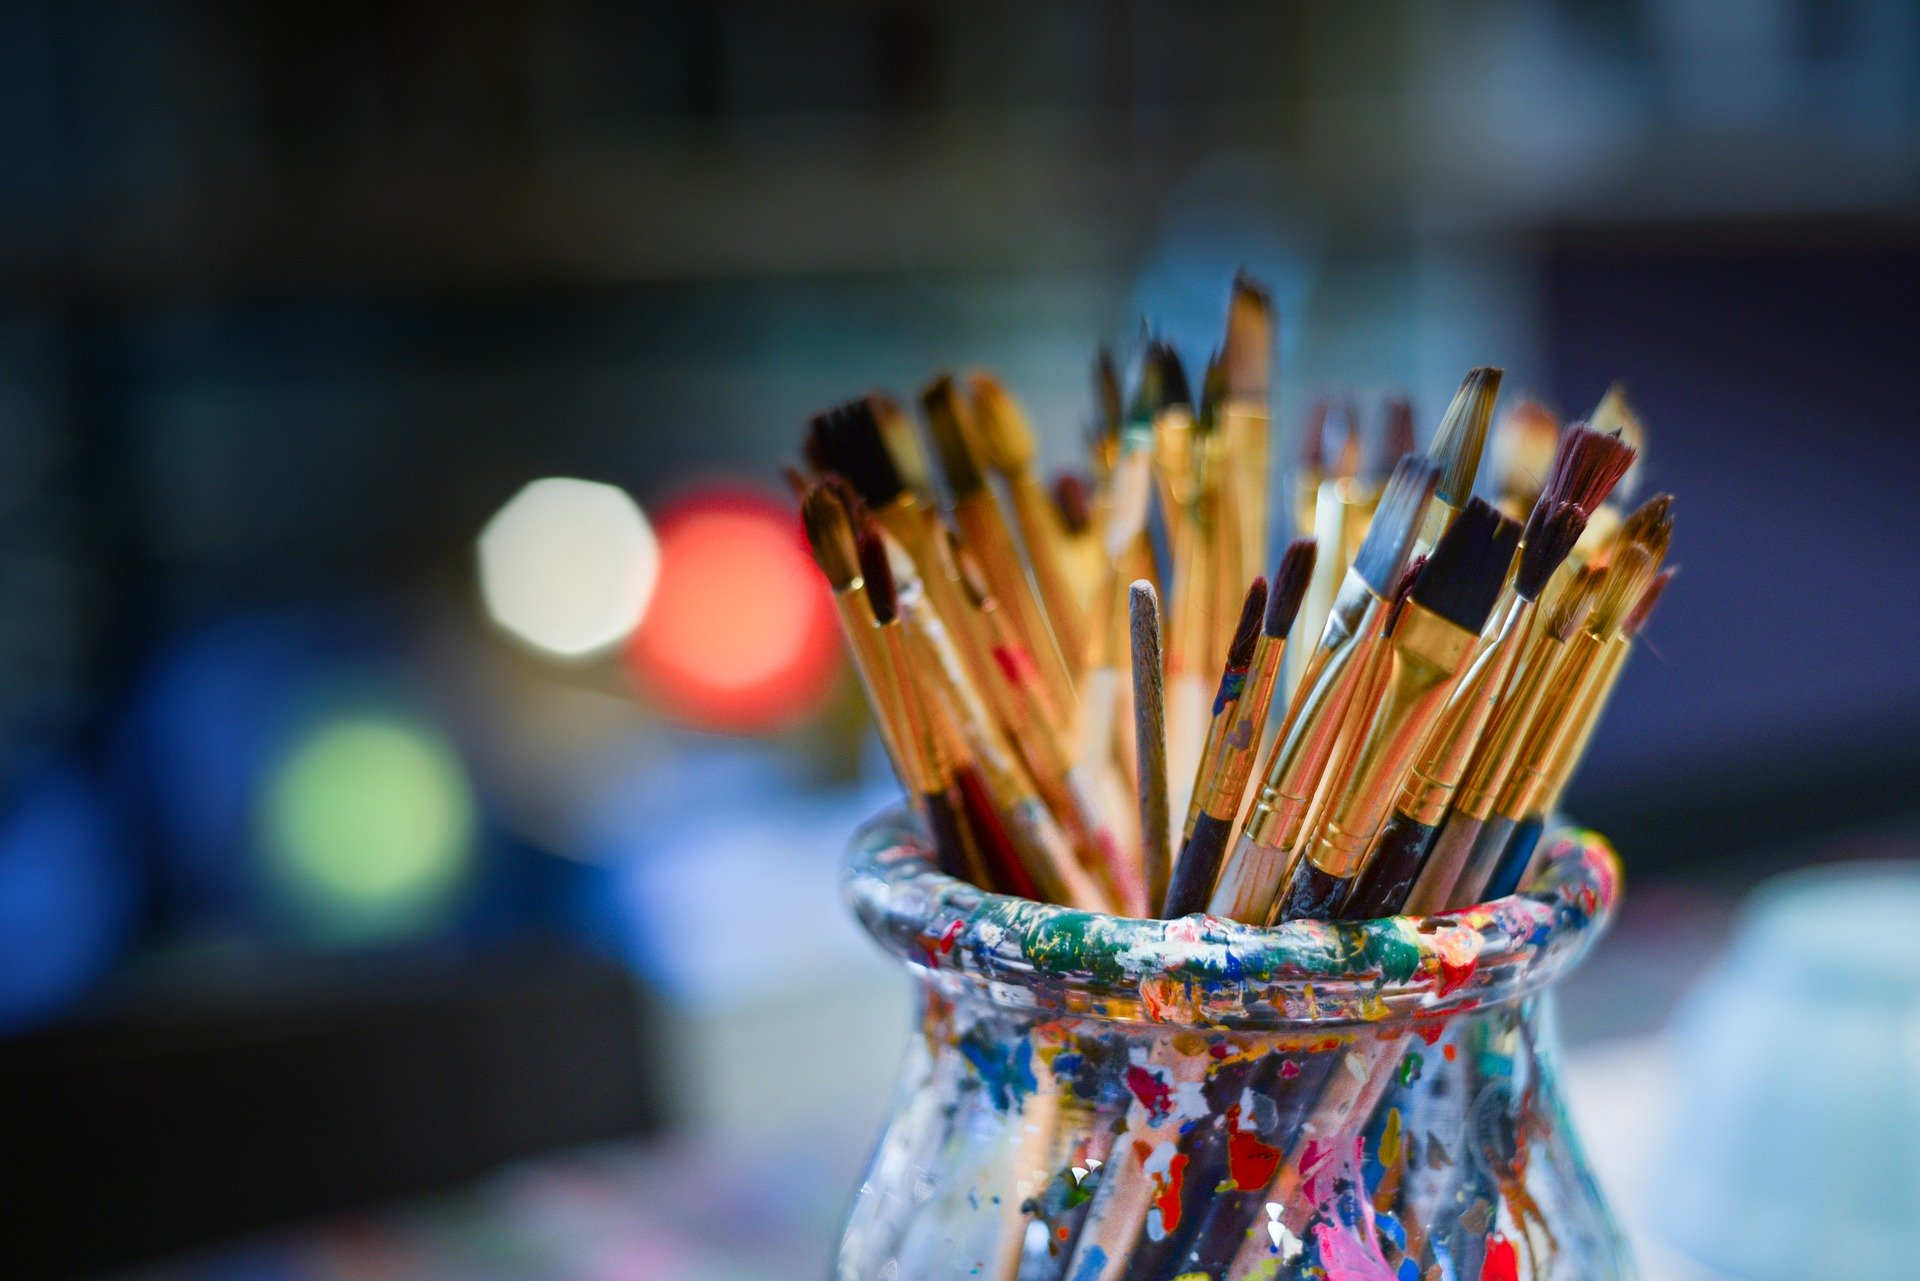 paint brushes up in cup